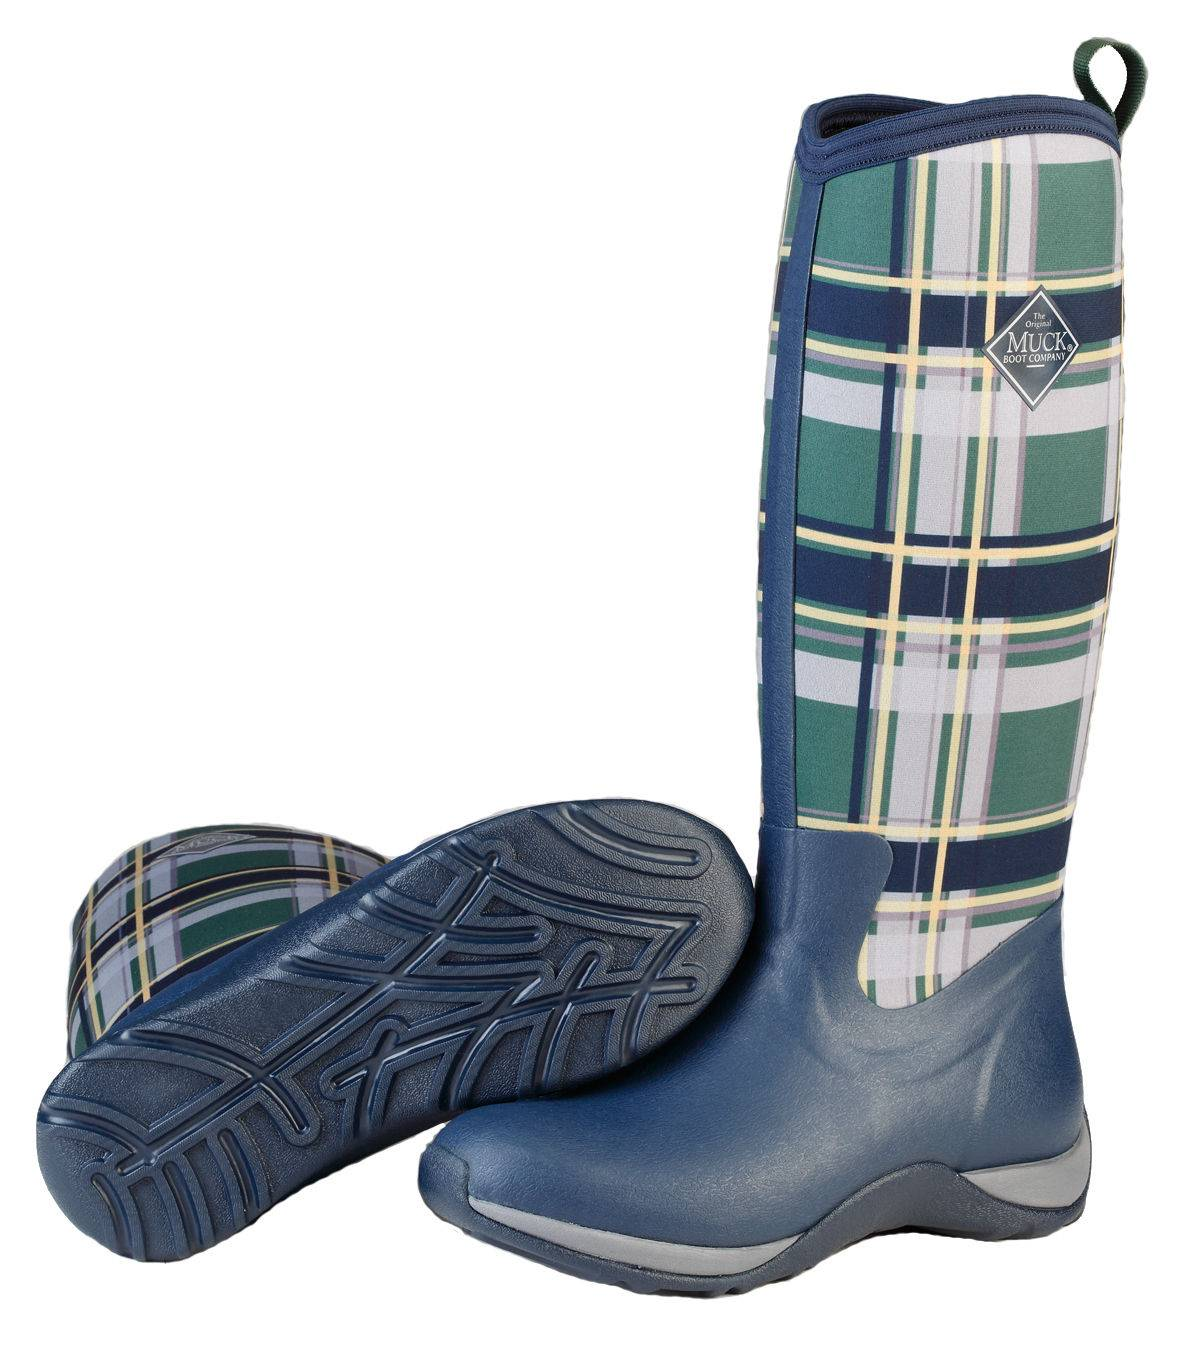 Muck Boots Arctic Adventure - Ladies - Navy/Green Plaid